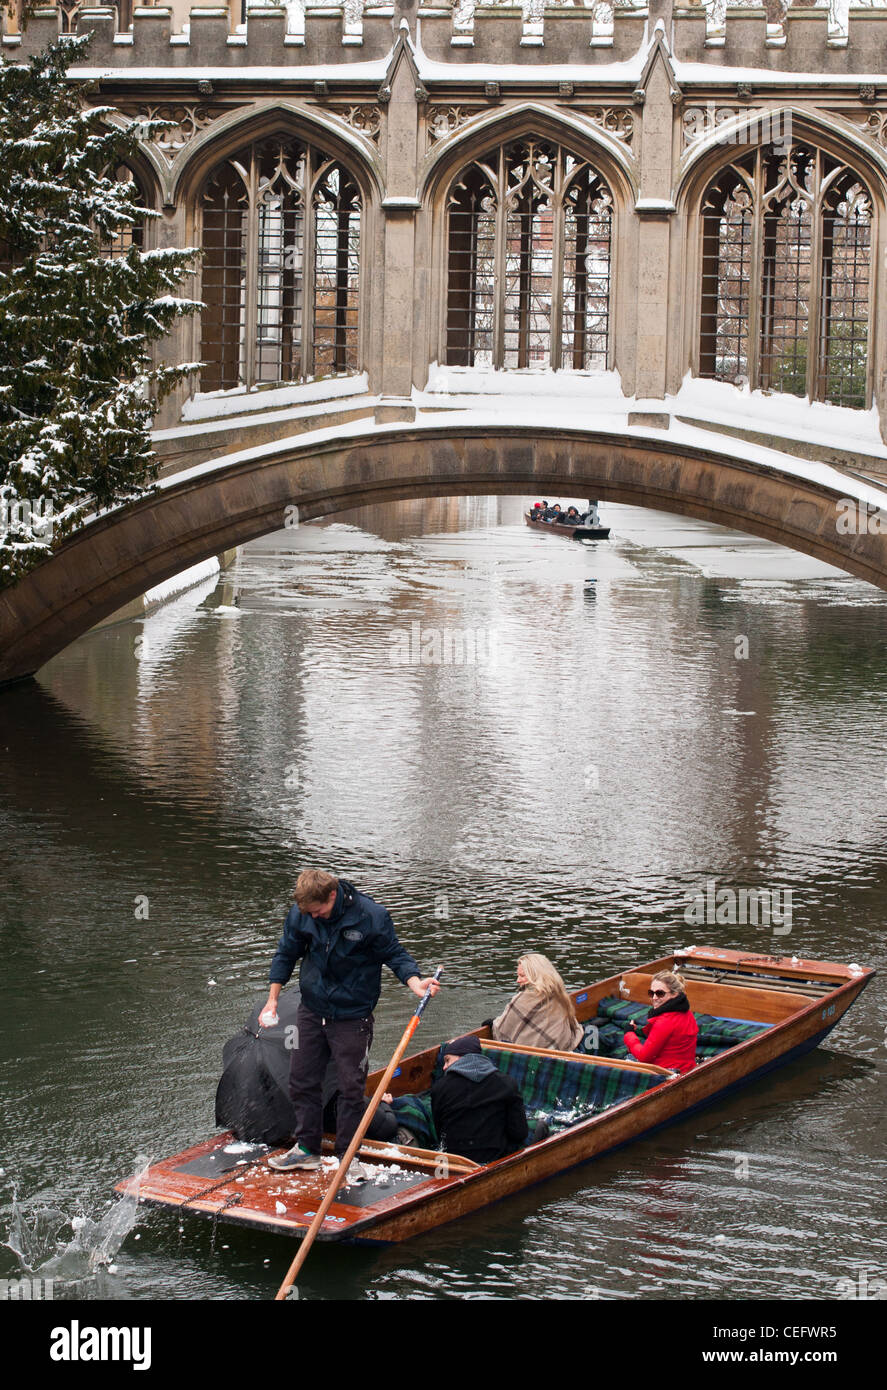 A punt comes under snowball attack at the Bridge of Sighs, St Johns College, Cambidge University, England. - Stock Image